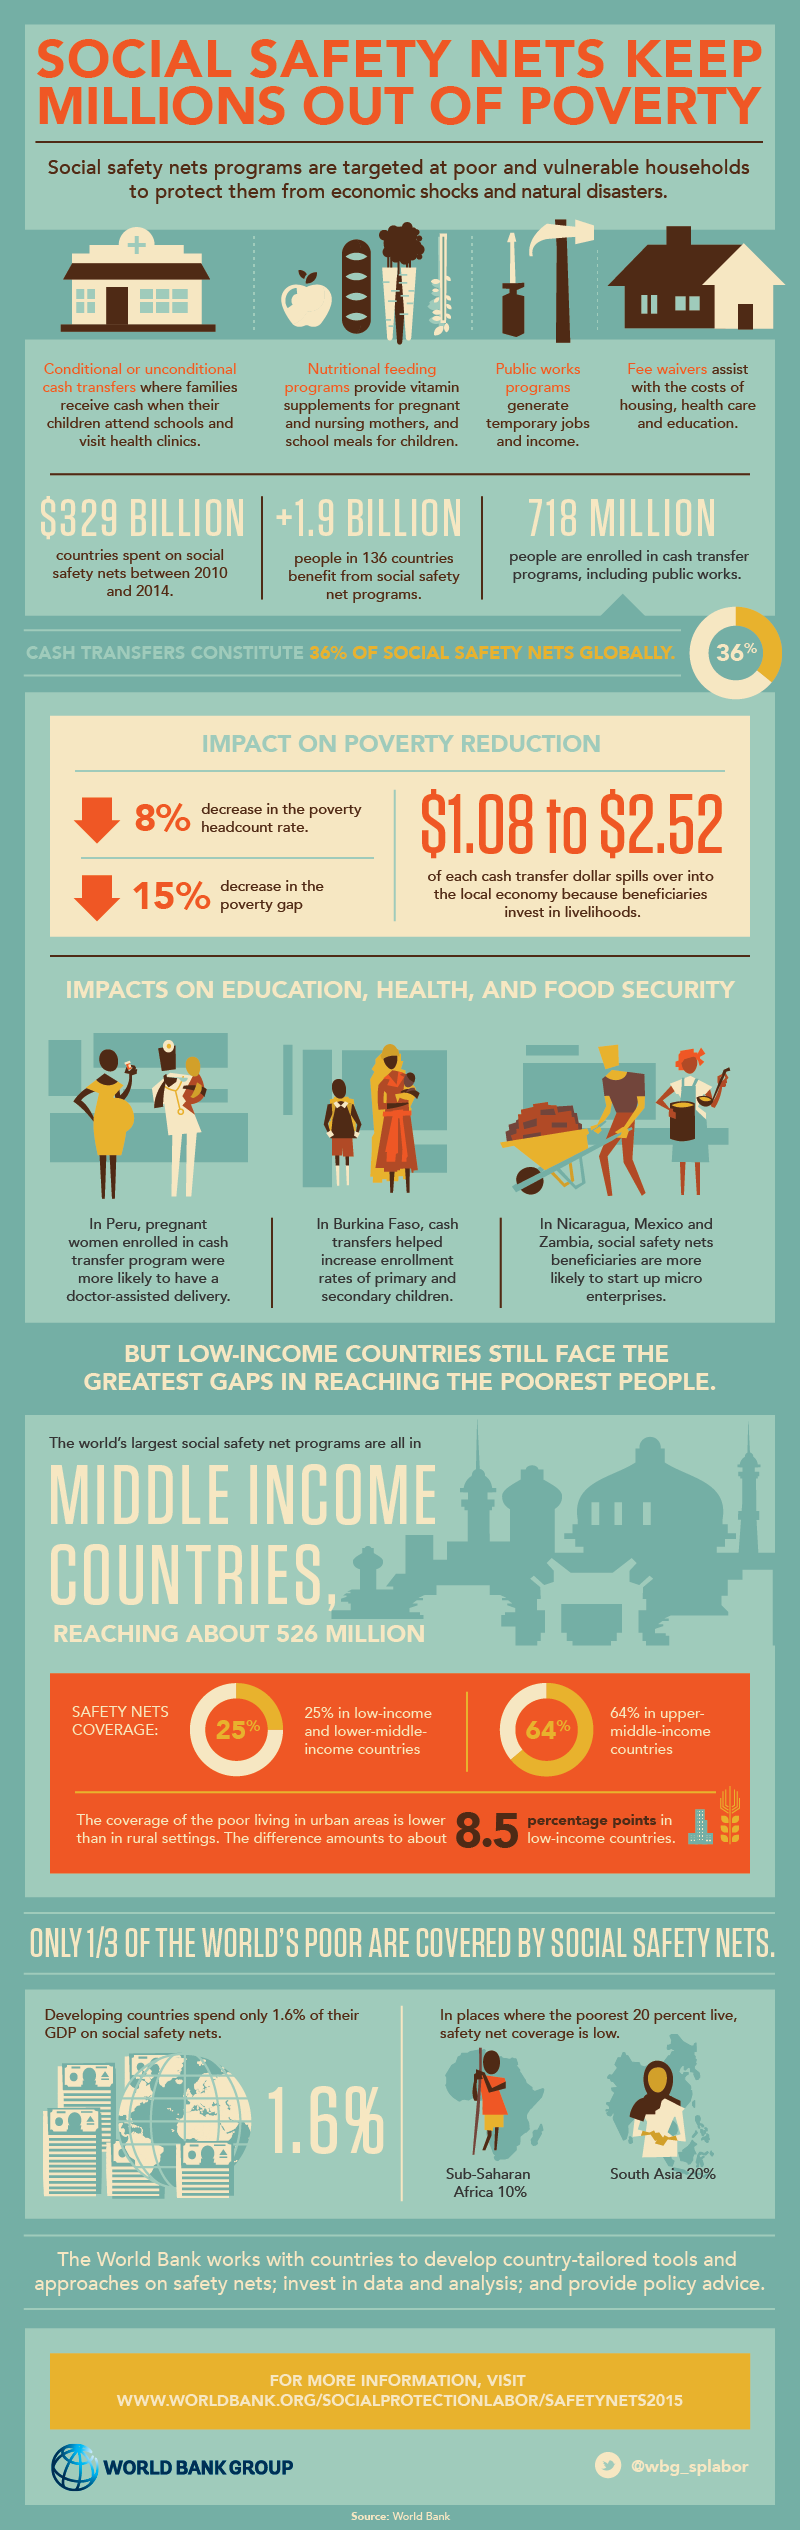 15 Facts on Social Protection and Safety Nets